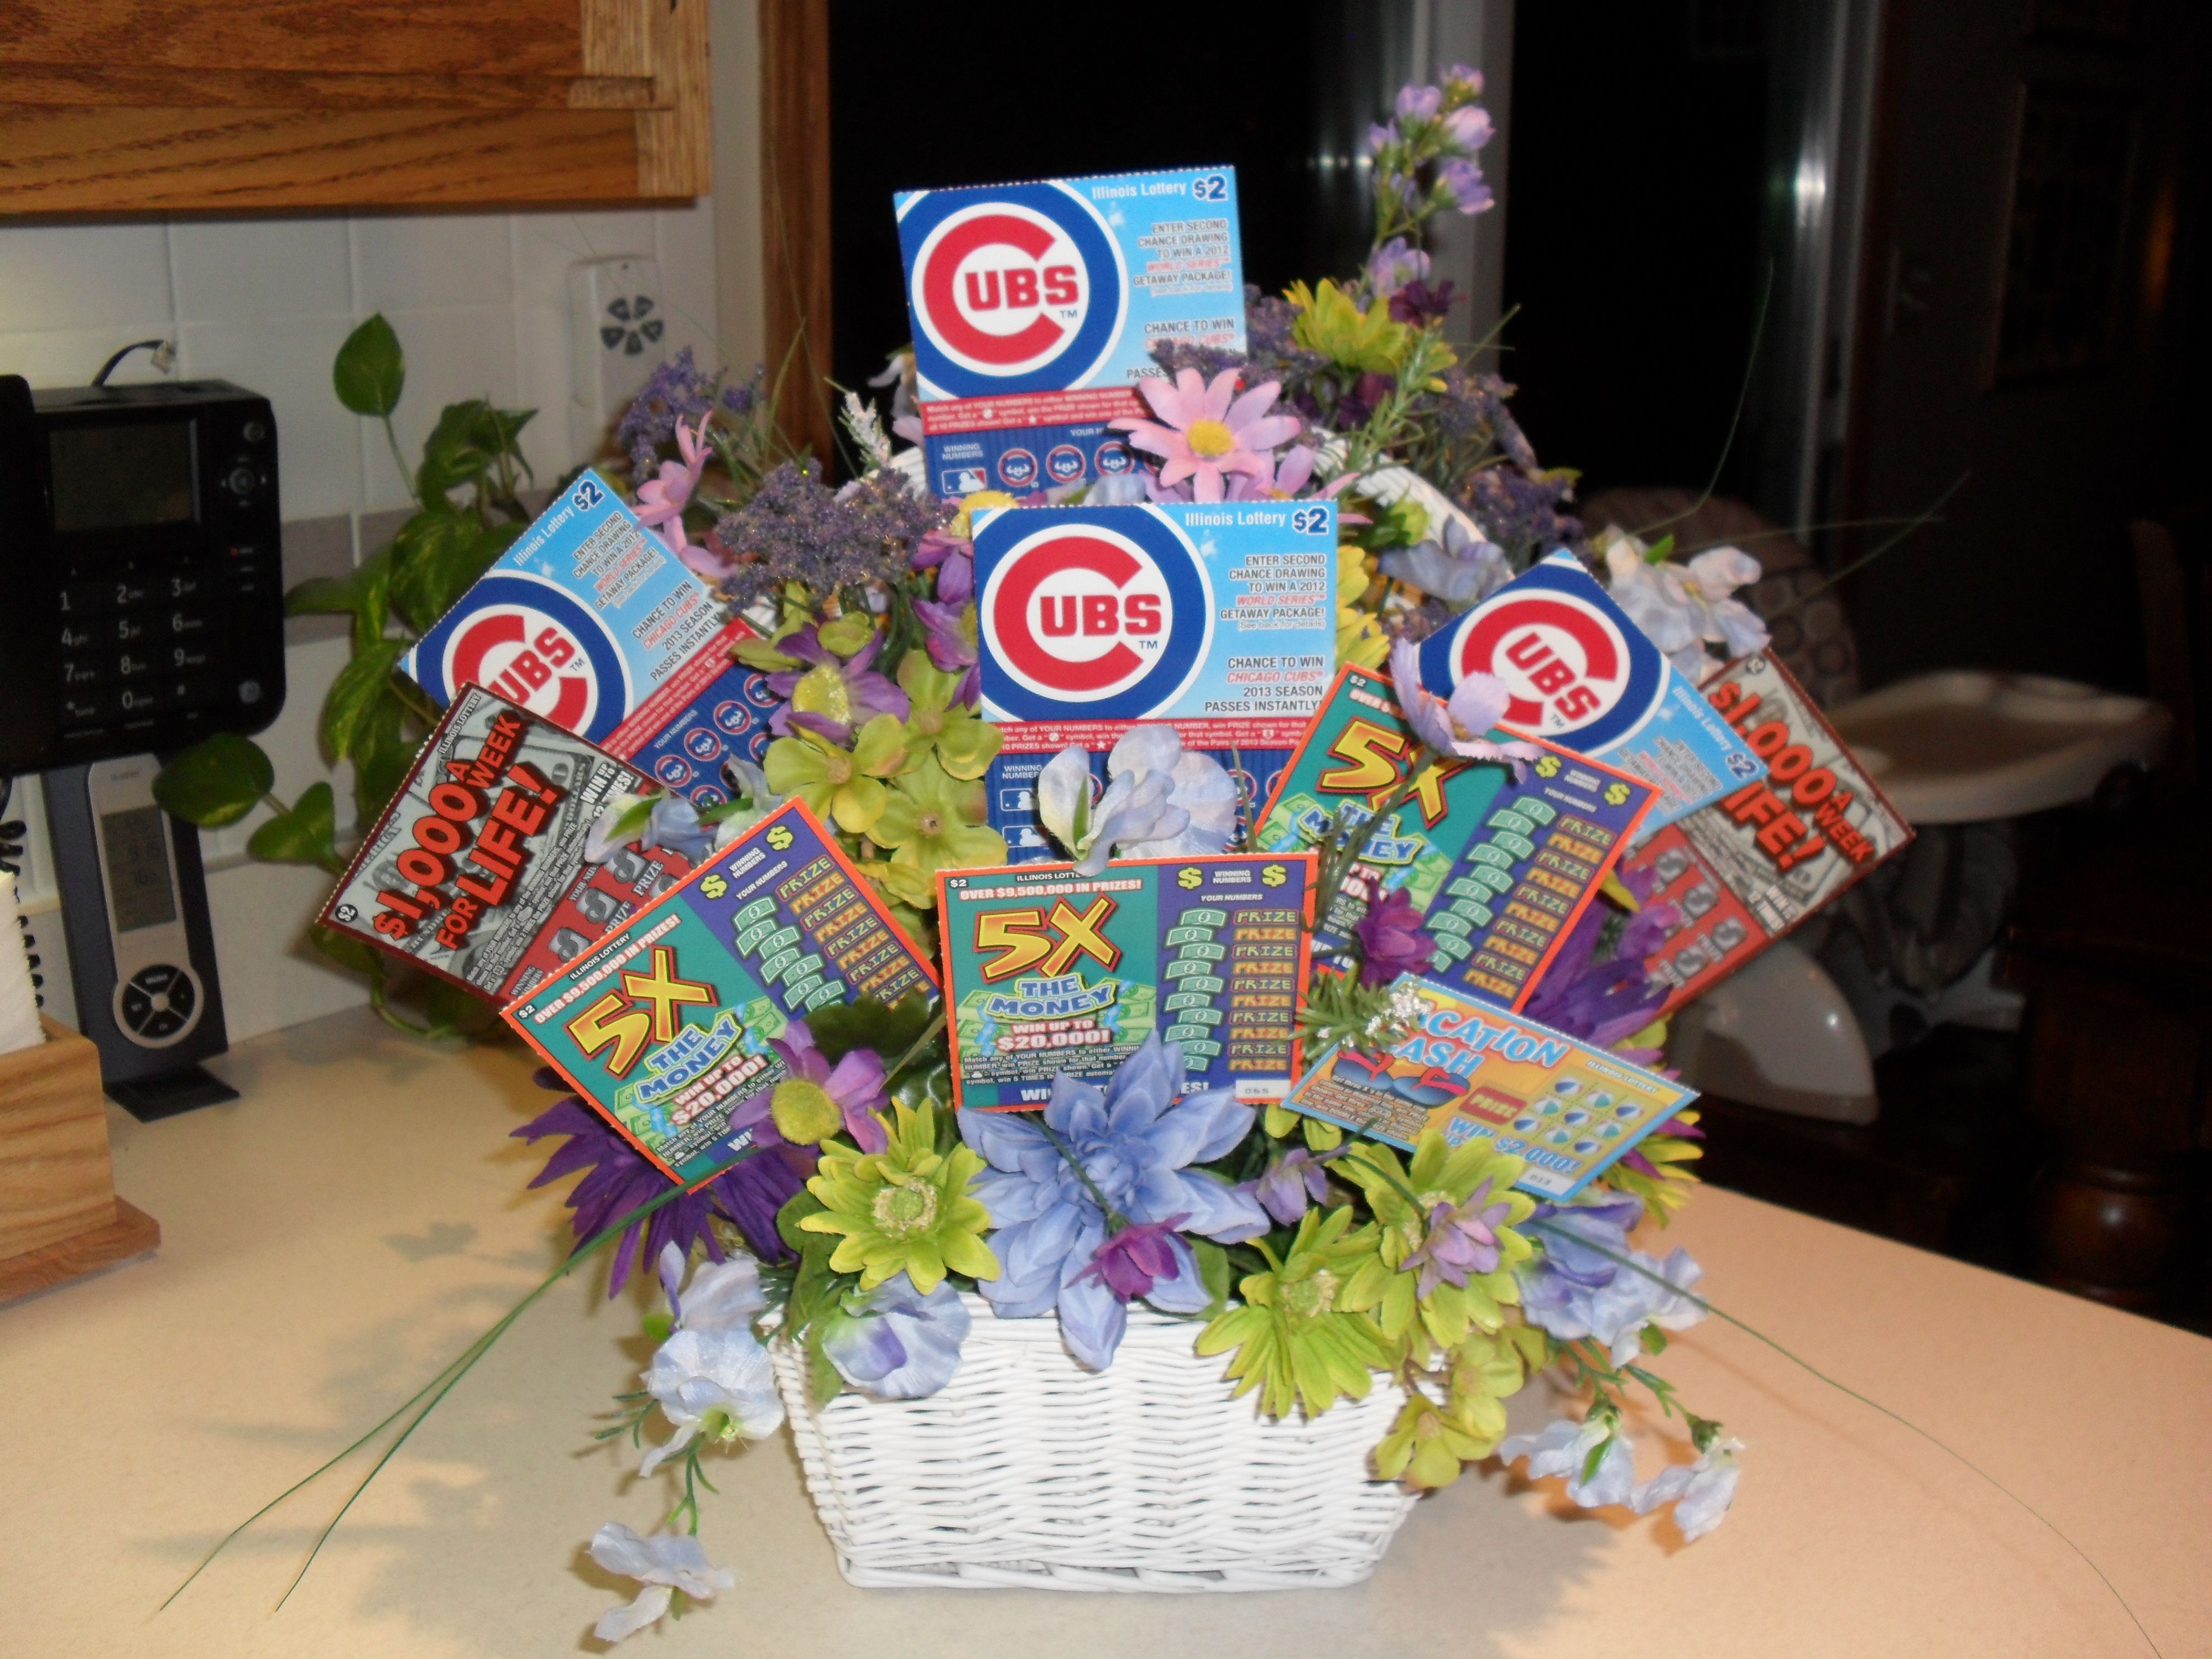 Artificial floral arrangement with instant lottery tickets